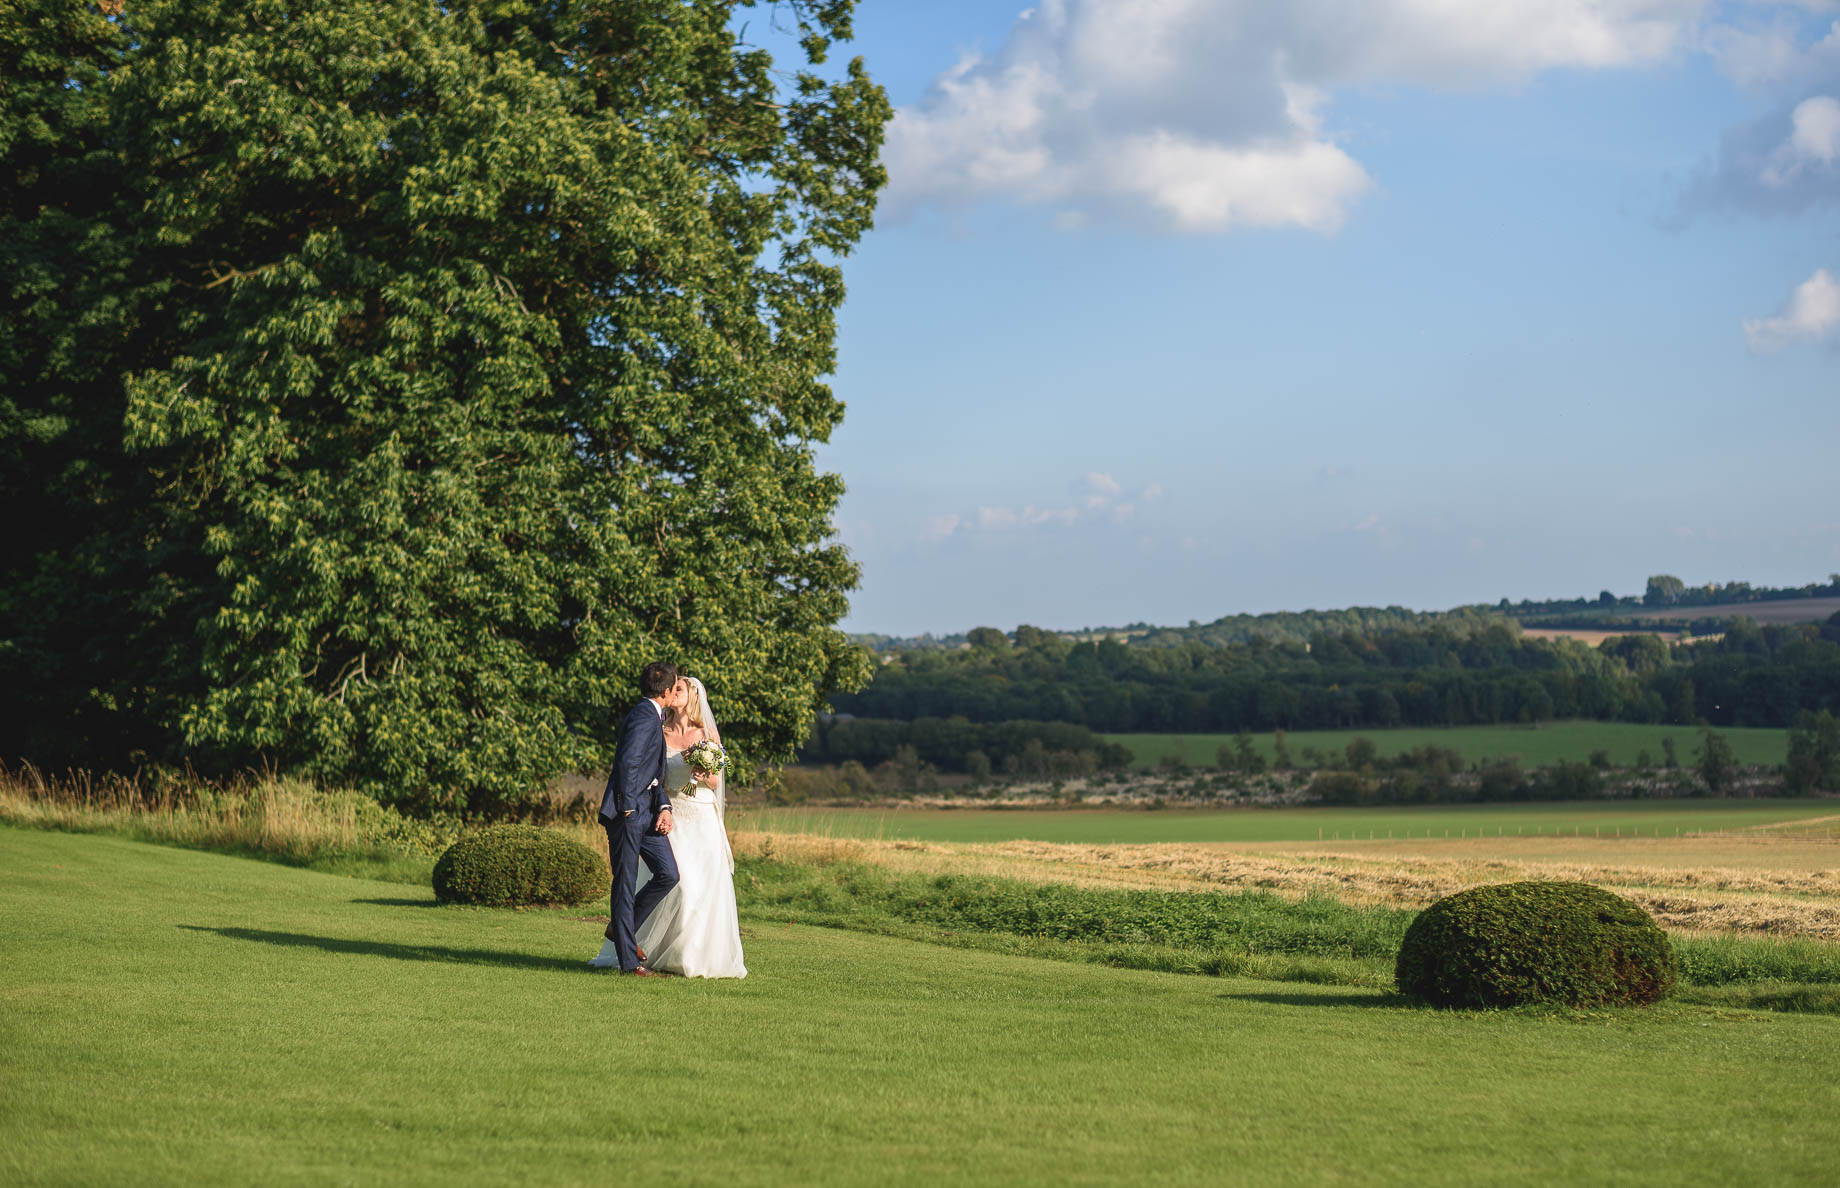 Aynhoe Park wedding photography - Guy Collier - Becky and Nick (164 of 233)